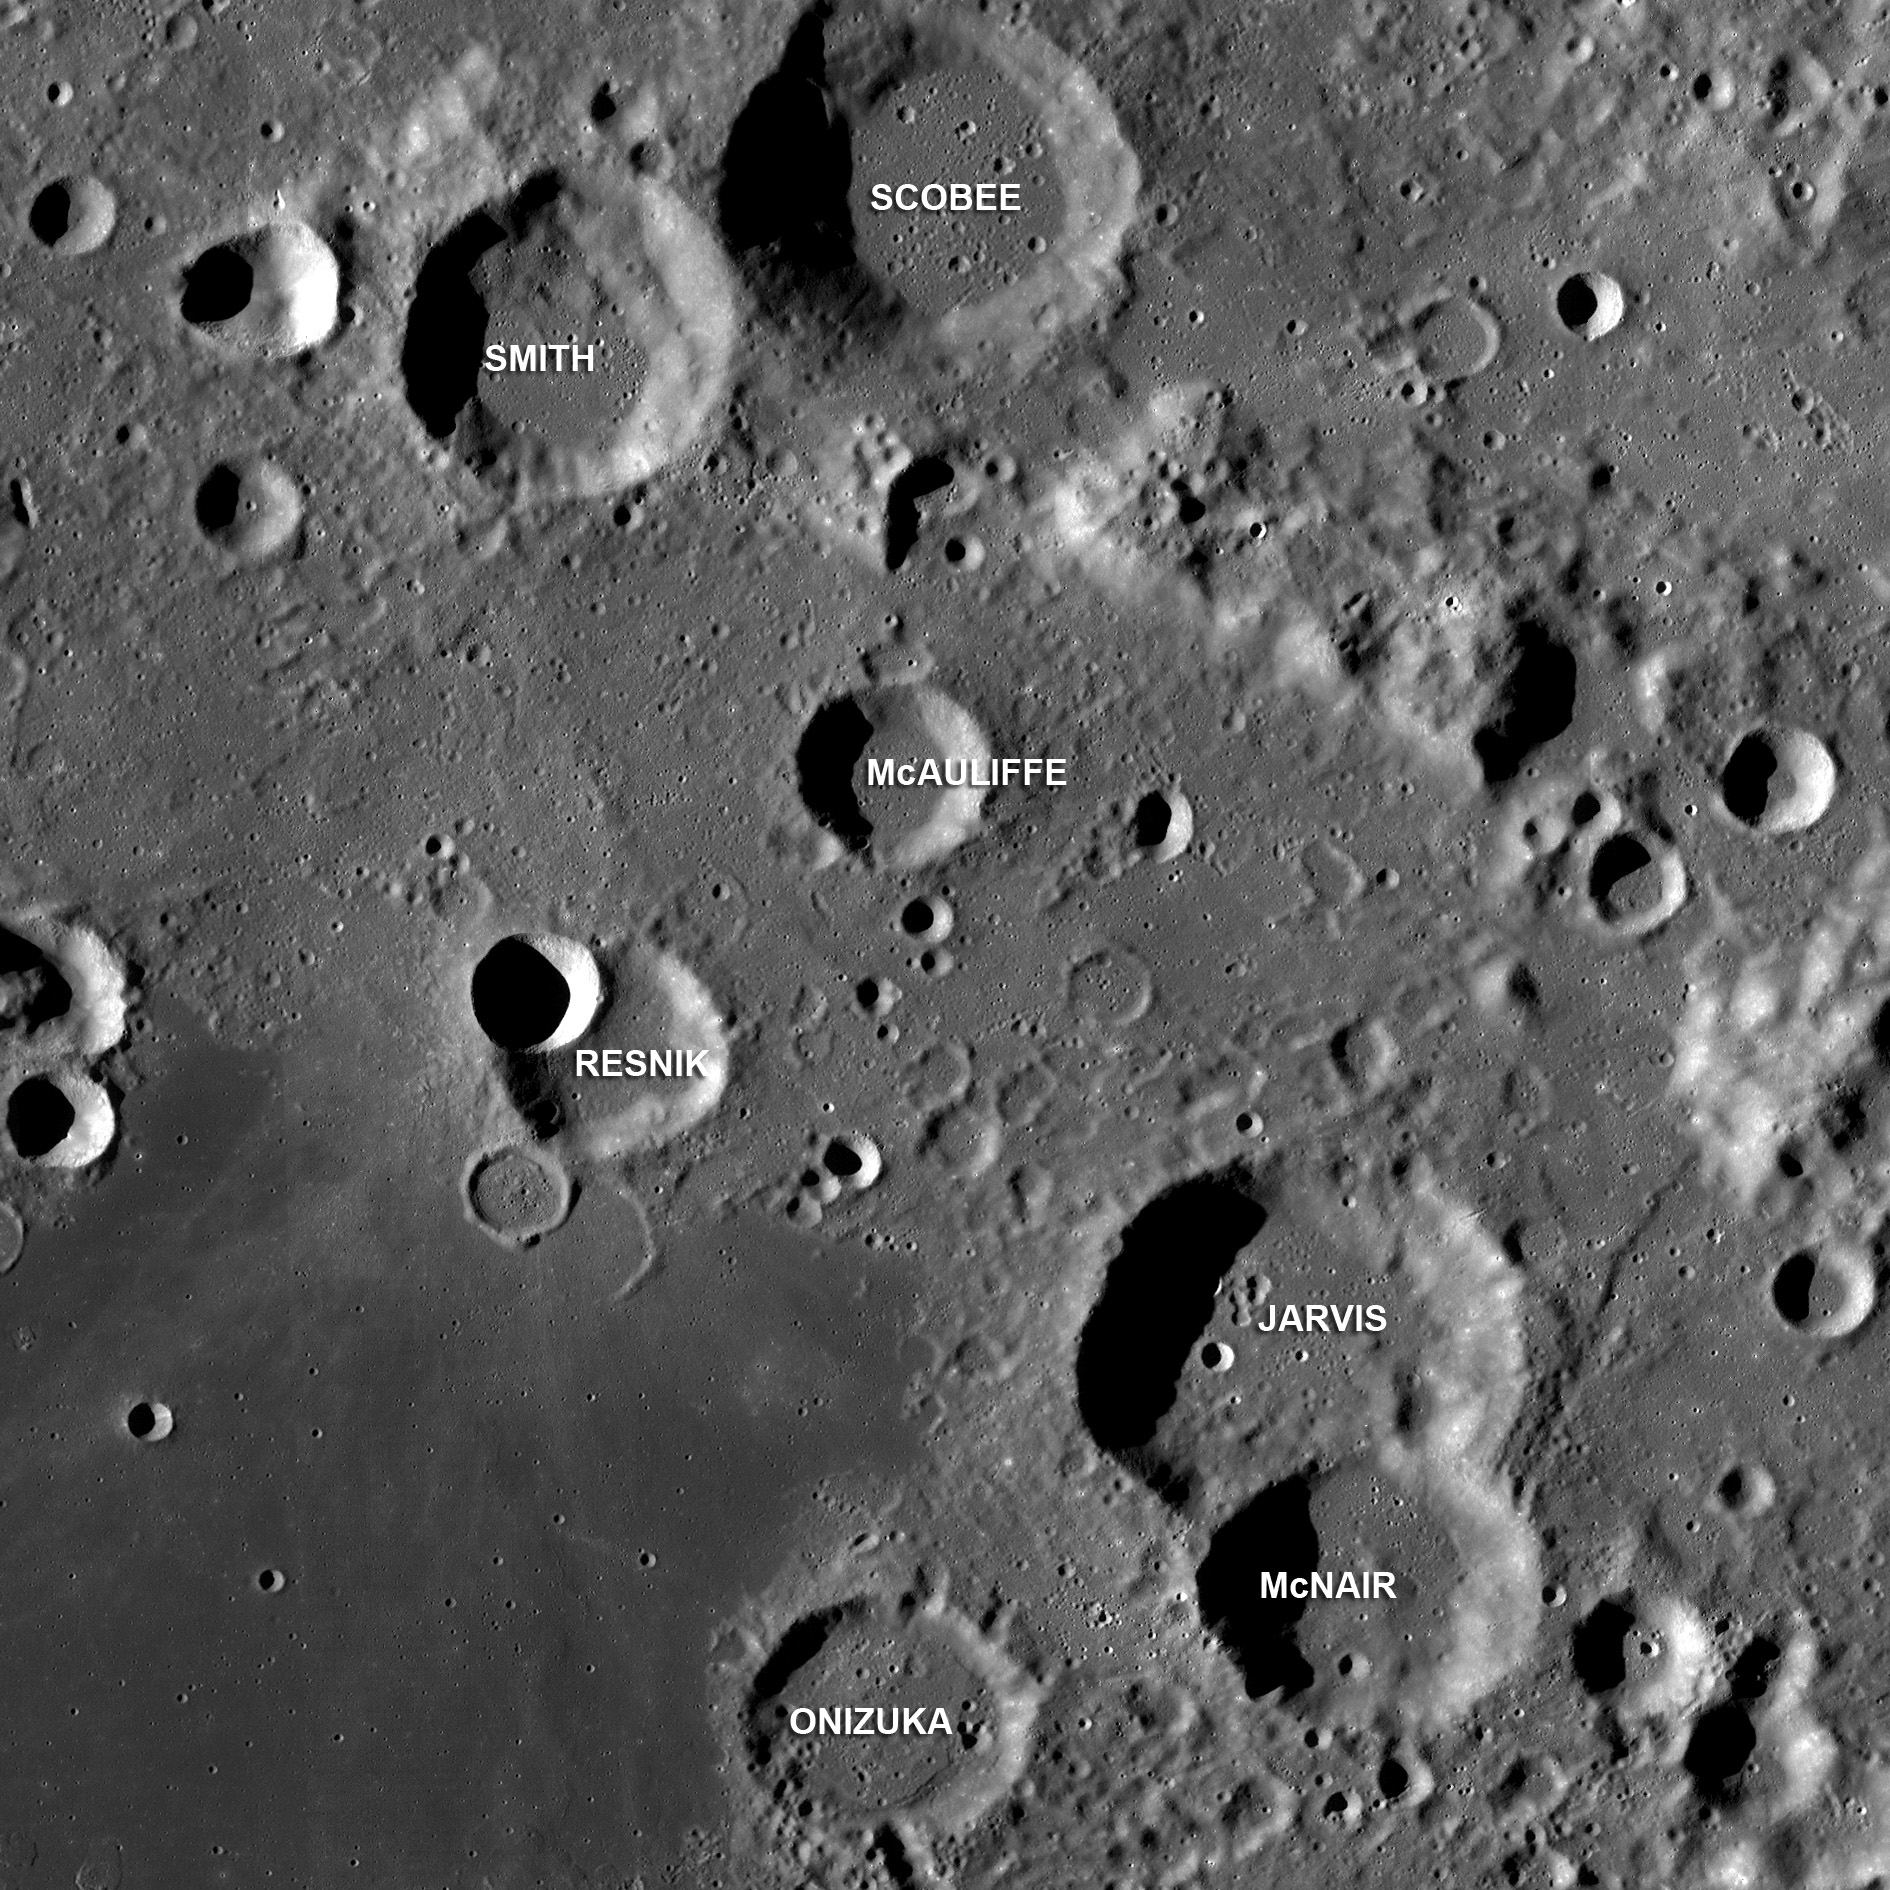 Image of the Moon with seven craters named after the crew of the lost Challenger Space Shuttle - Gregory Jarvis, Christa McAuliffe, Ronald McNair, Ellison Onizuka, Judith Resnick, Dick Scobee, and Michael Smith.